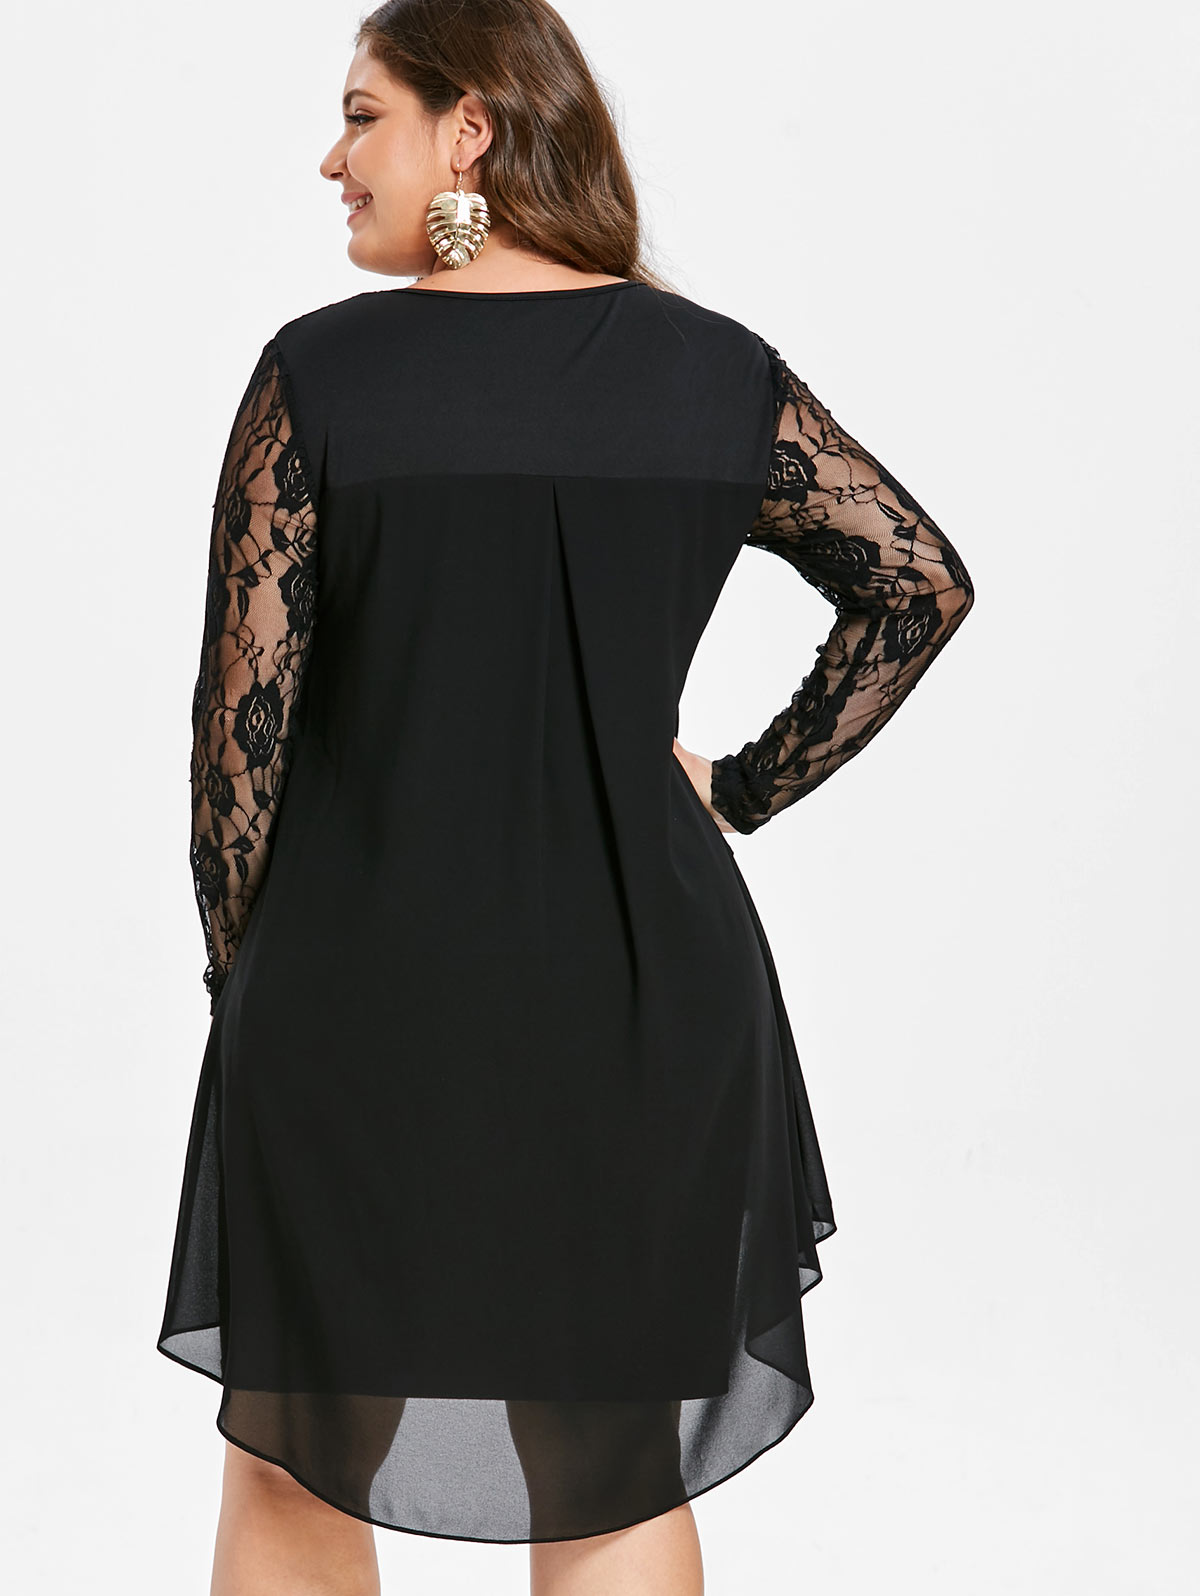 9d3301179c US $14.42 46% OFF|Wipalo Women Plus Size Sheer Lace Sleeve High Low Hem  Dress Casual Solid Asymmetric Splicing Dress Spring Autumn Party  Vestidos-in ...